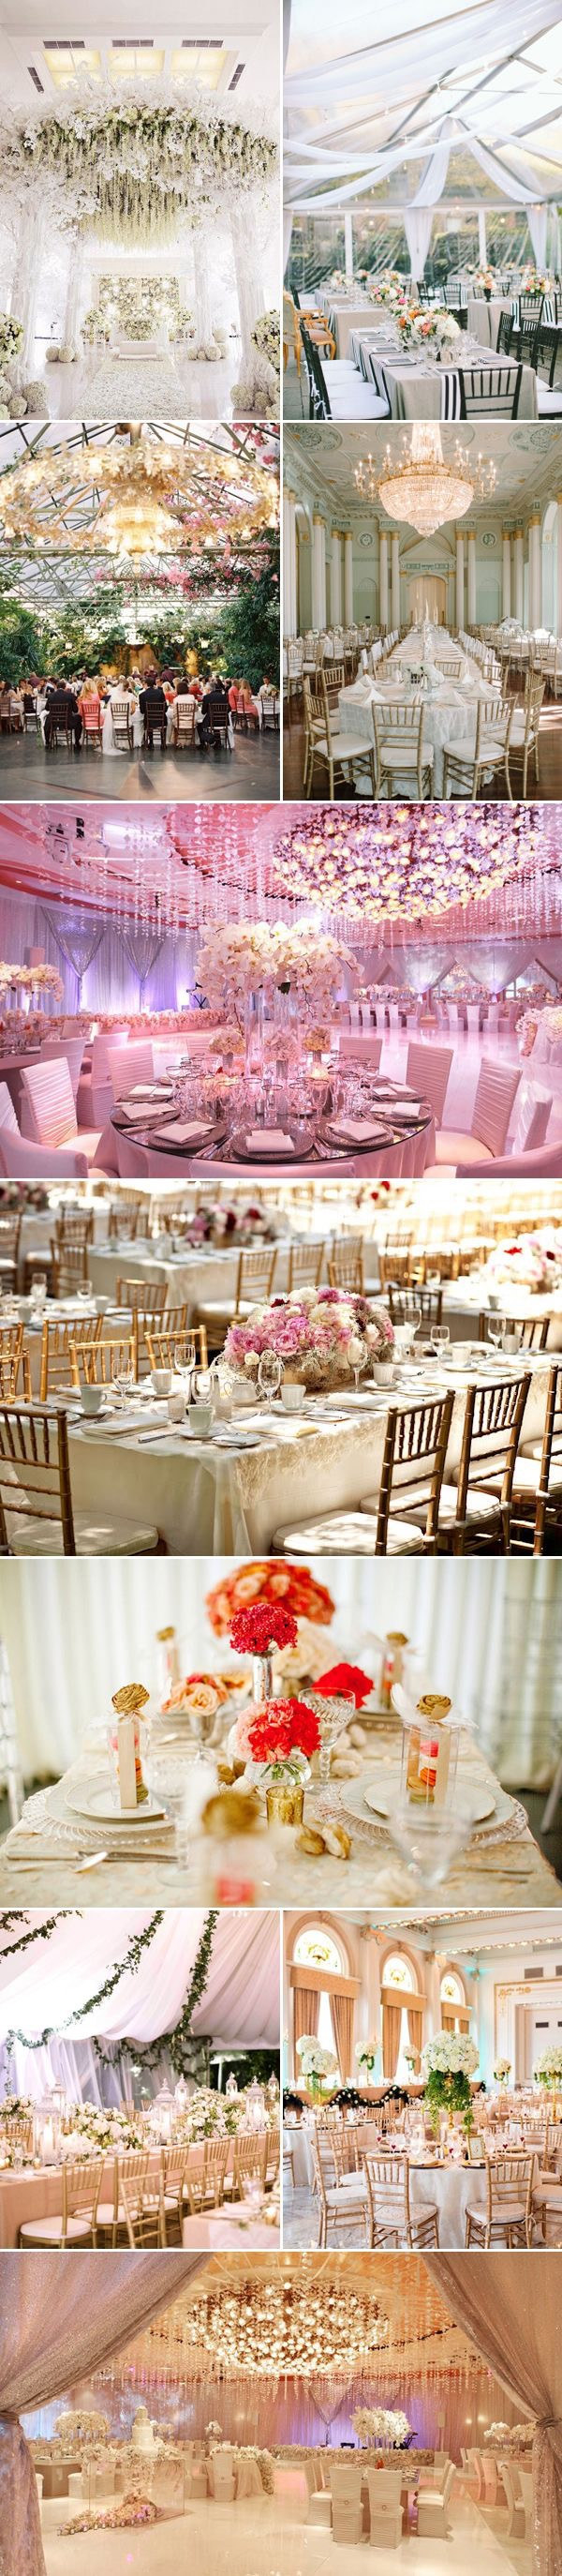 elegant and creative indoor wedding reception decoration ideas also pin by love fashion on event decor pinterest rh